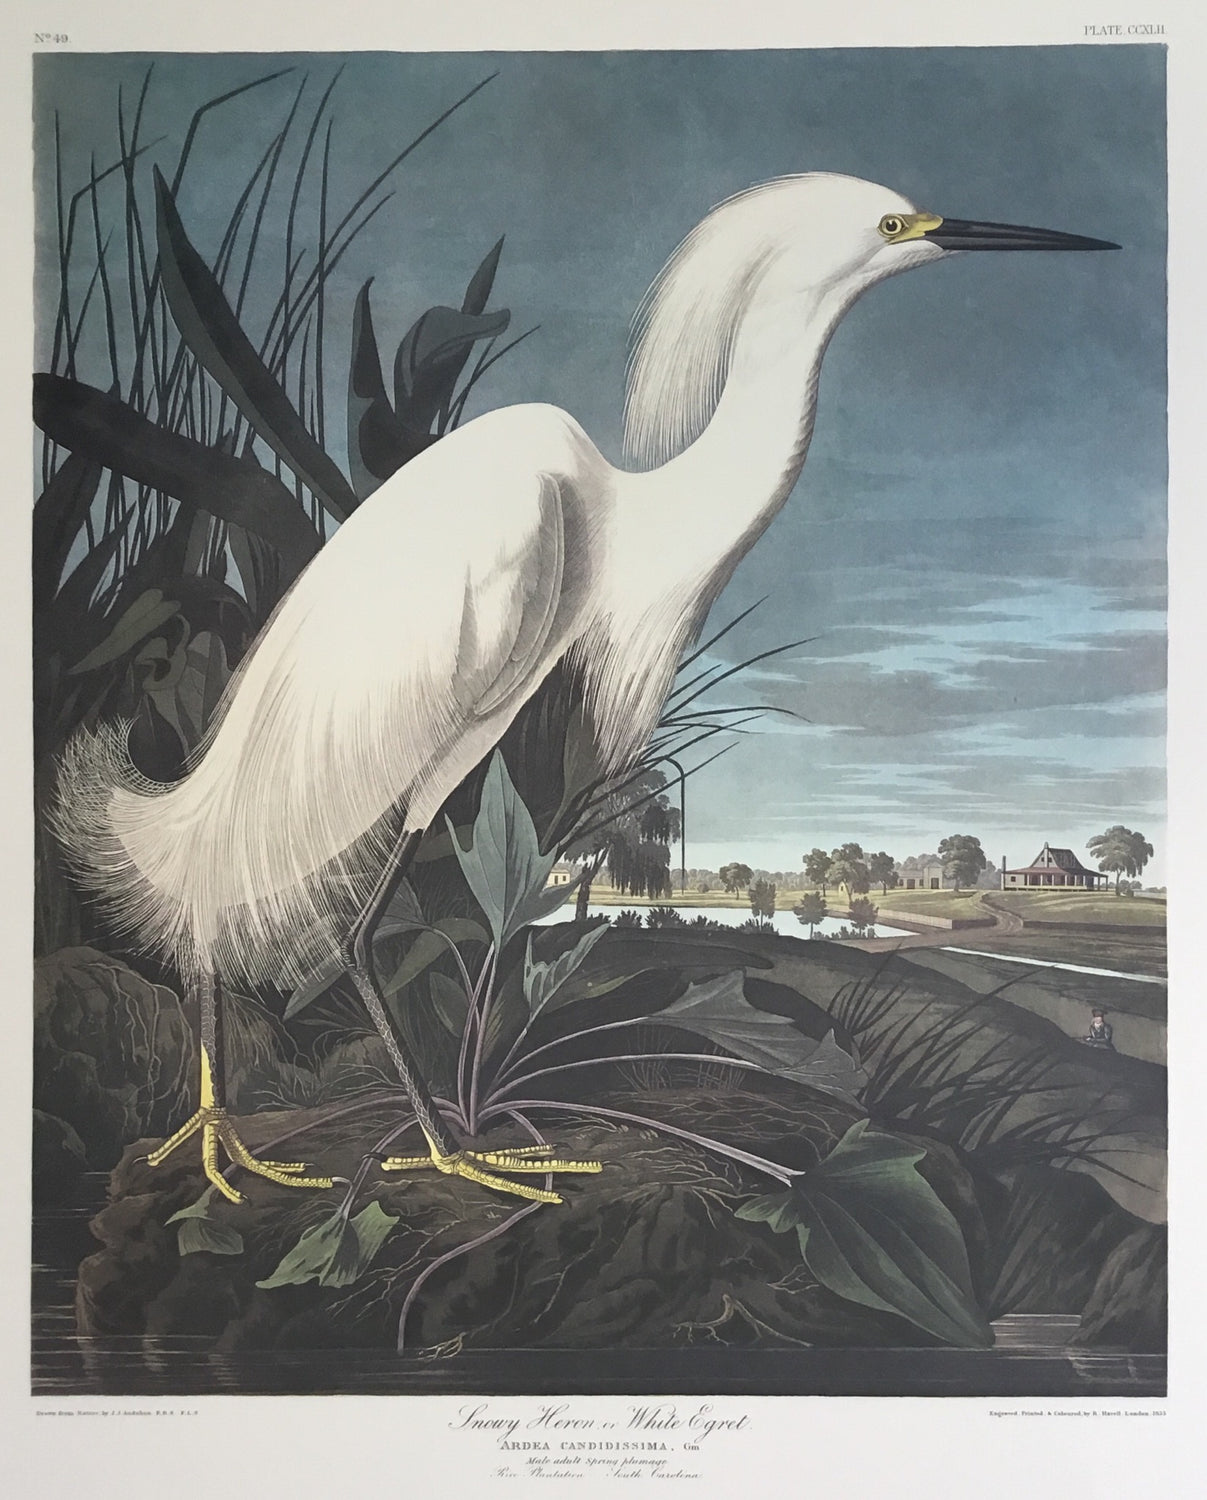 Princeton double elephant Snowy Egret with wide margins trimmed to 21 x 24 inches.